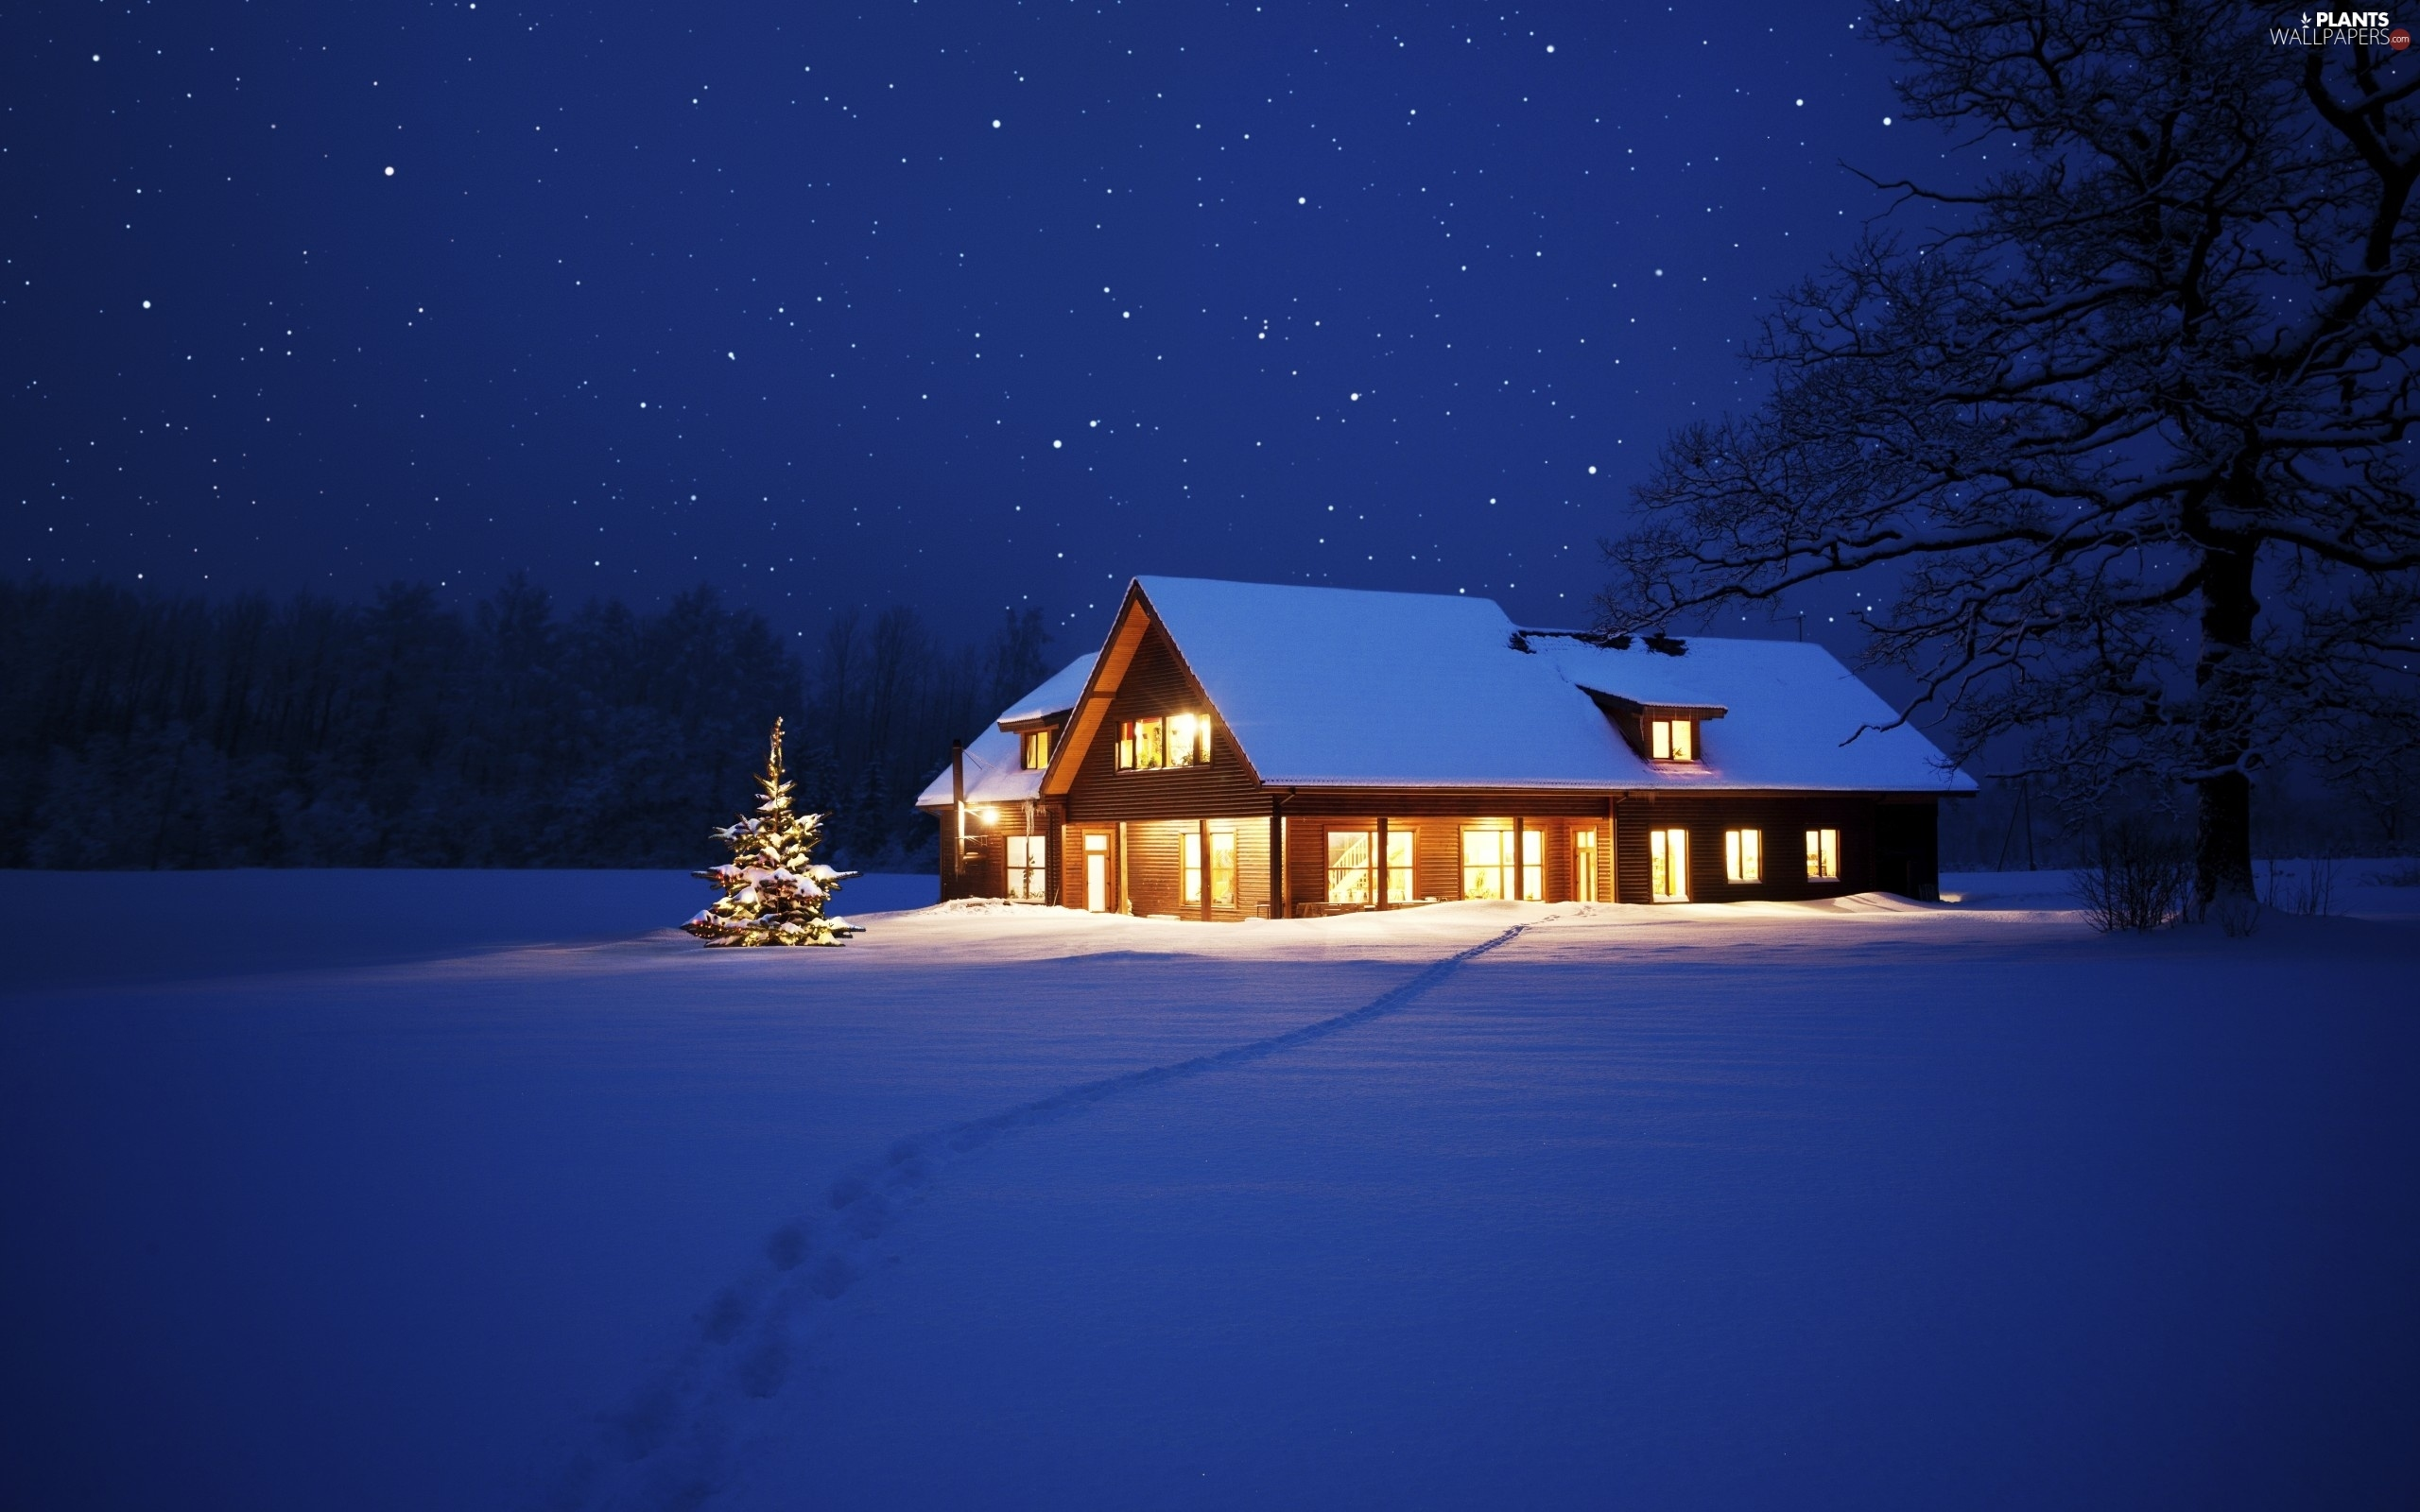 Floodlit, winter, christmas tree, house